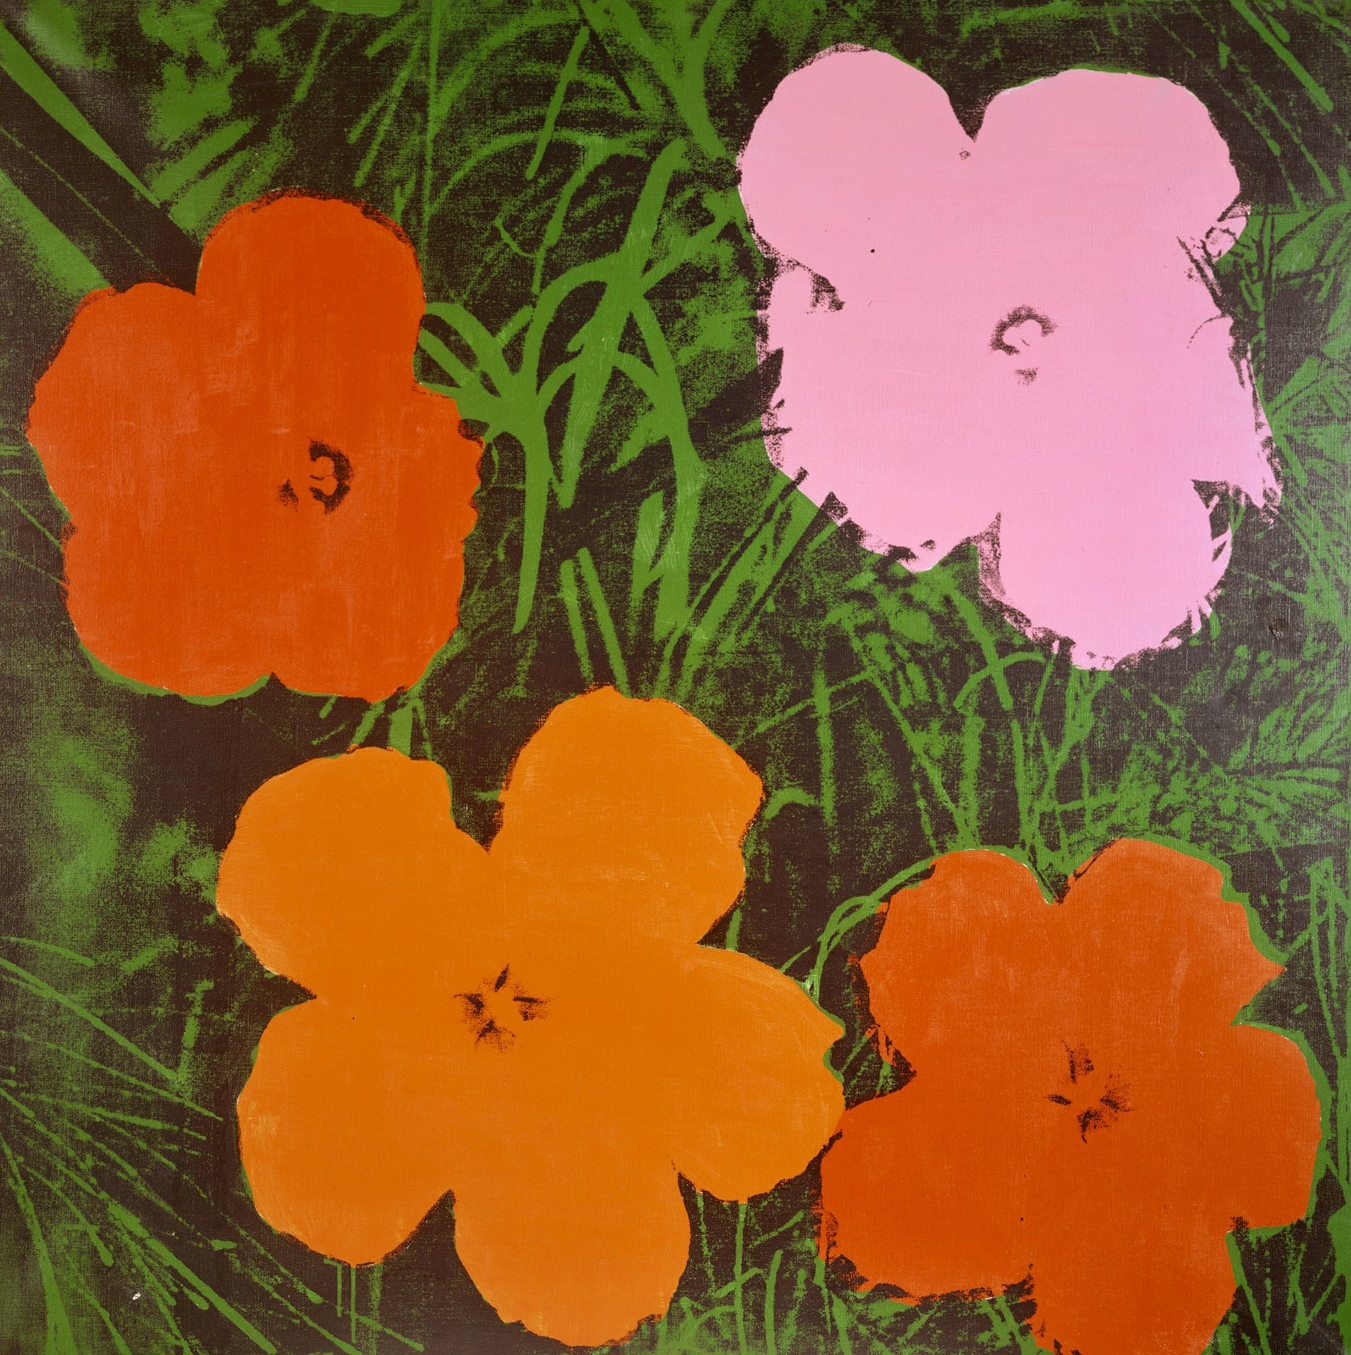 ANDY WARHOL, Four-Foot Flowers, 1964 ©Courtesy Heidi Horten Collection | Foto: Courtesy Heidi Horten Collection The Andy Warhol Foundation for the Visual Arts, Inc. / Licensed by Bildrecht, 2017